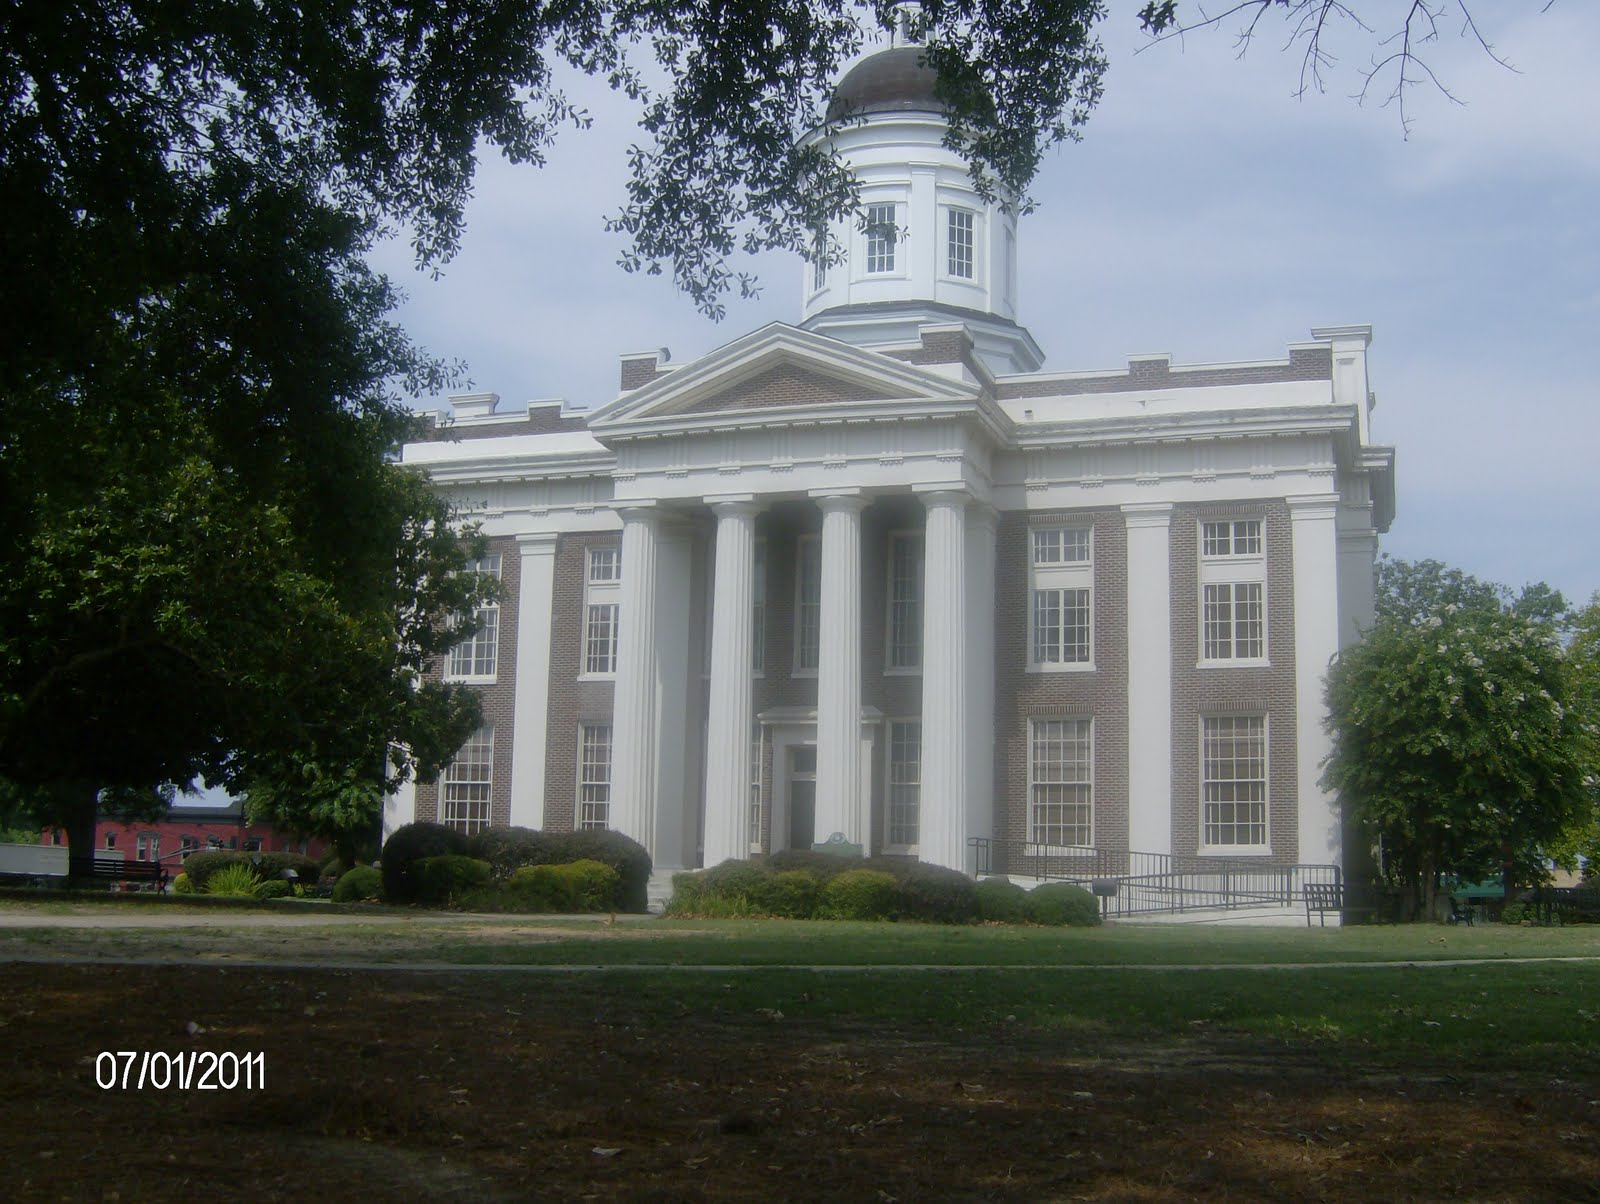 Mississippi madison county camden - Madison County Courthouse Canton Mississippi